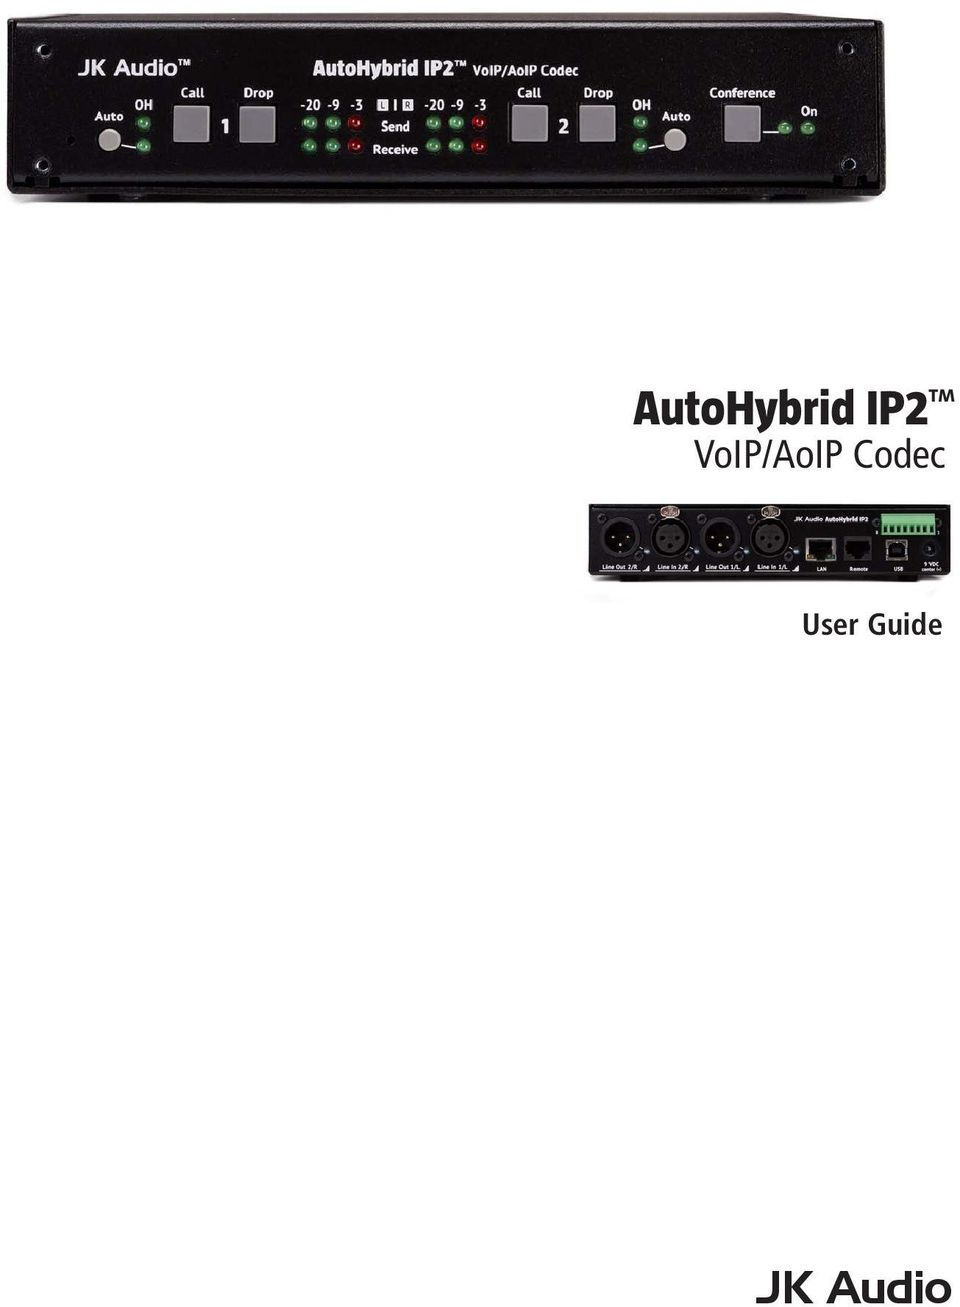 AutoHybrid IP2  JK Audio  VoIP/AoIP Codec  User Guide - PDF